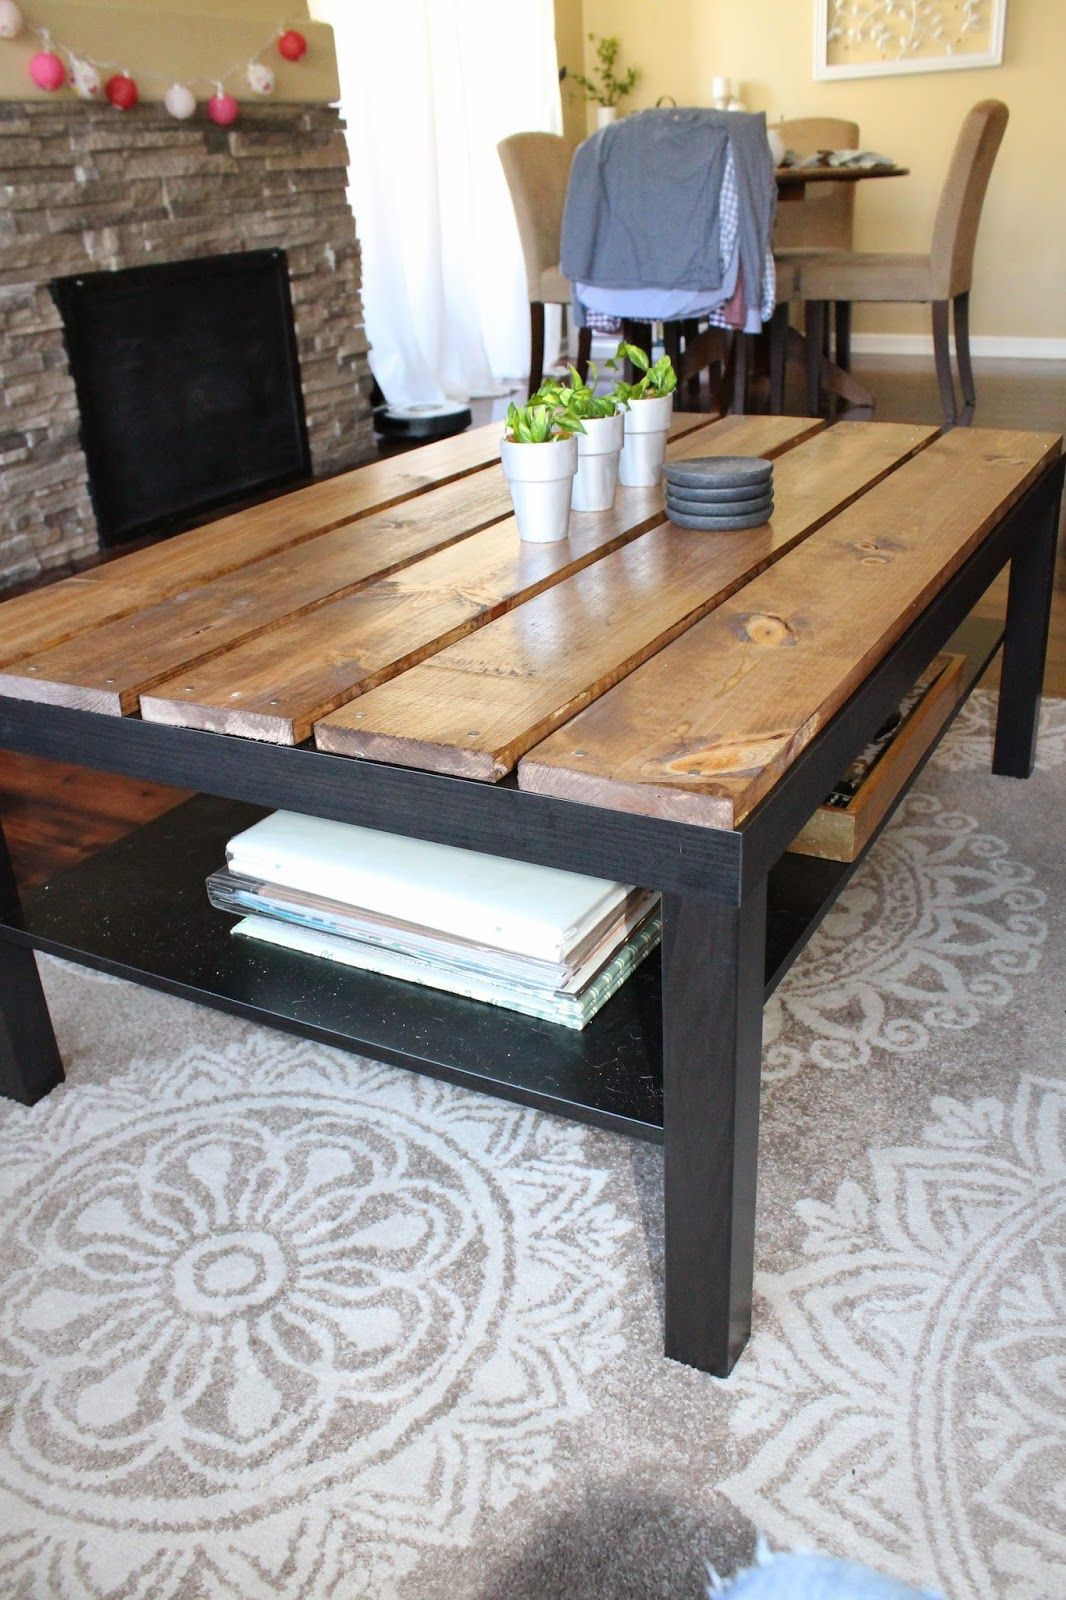 ikea coffee table hack the weekender wife home. Black Bedroom Furniture Sets. Home Design Ideas